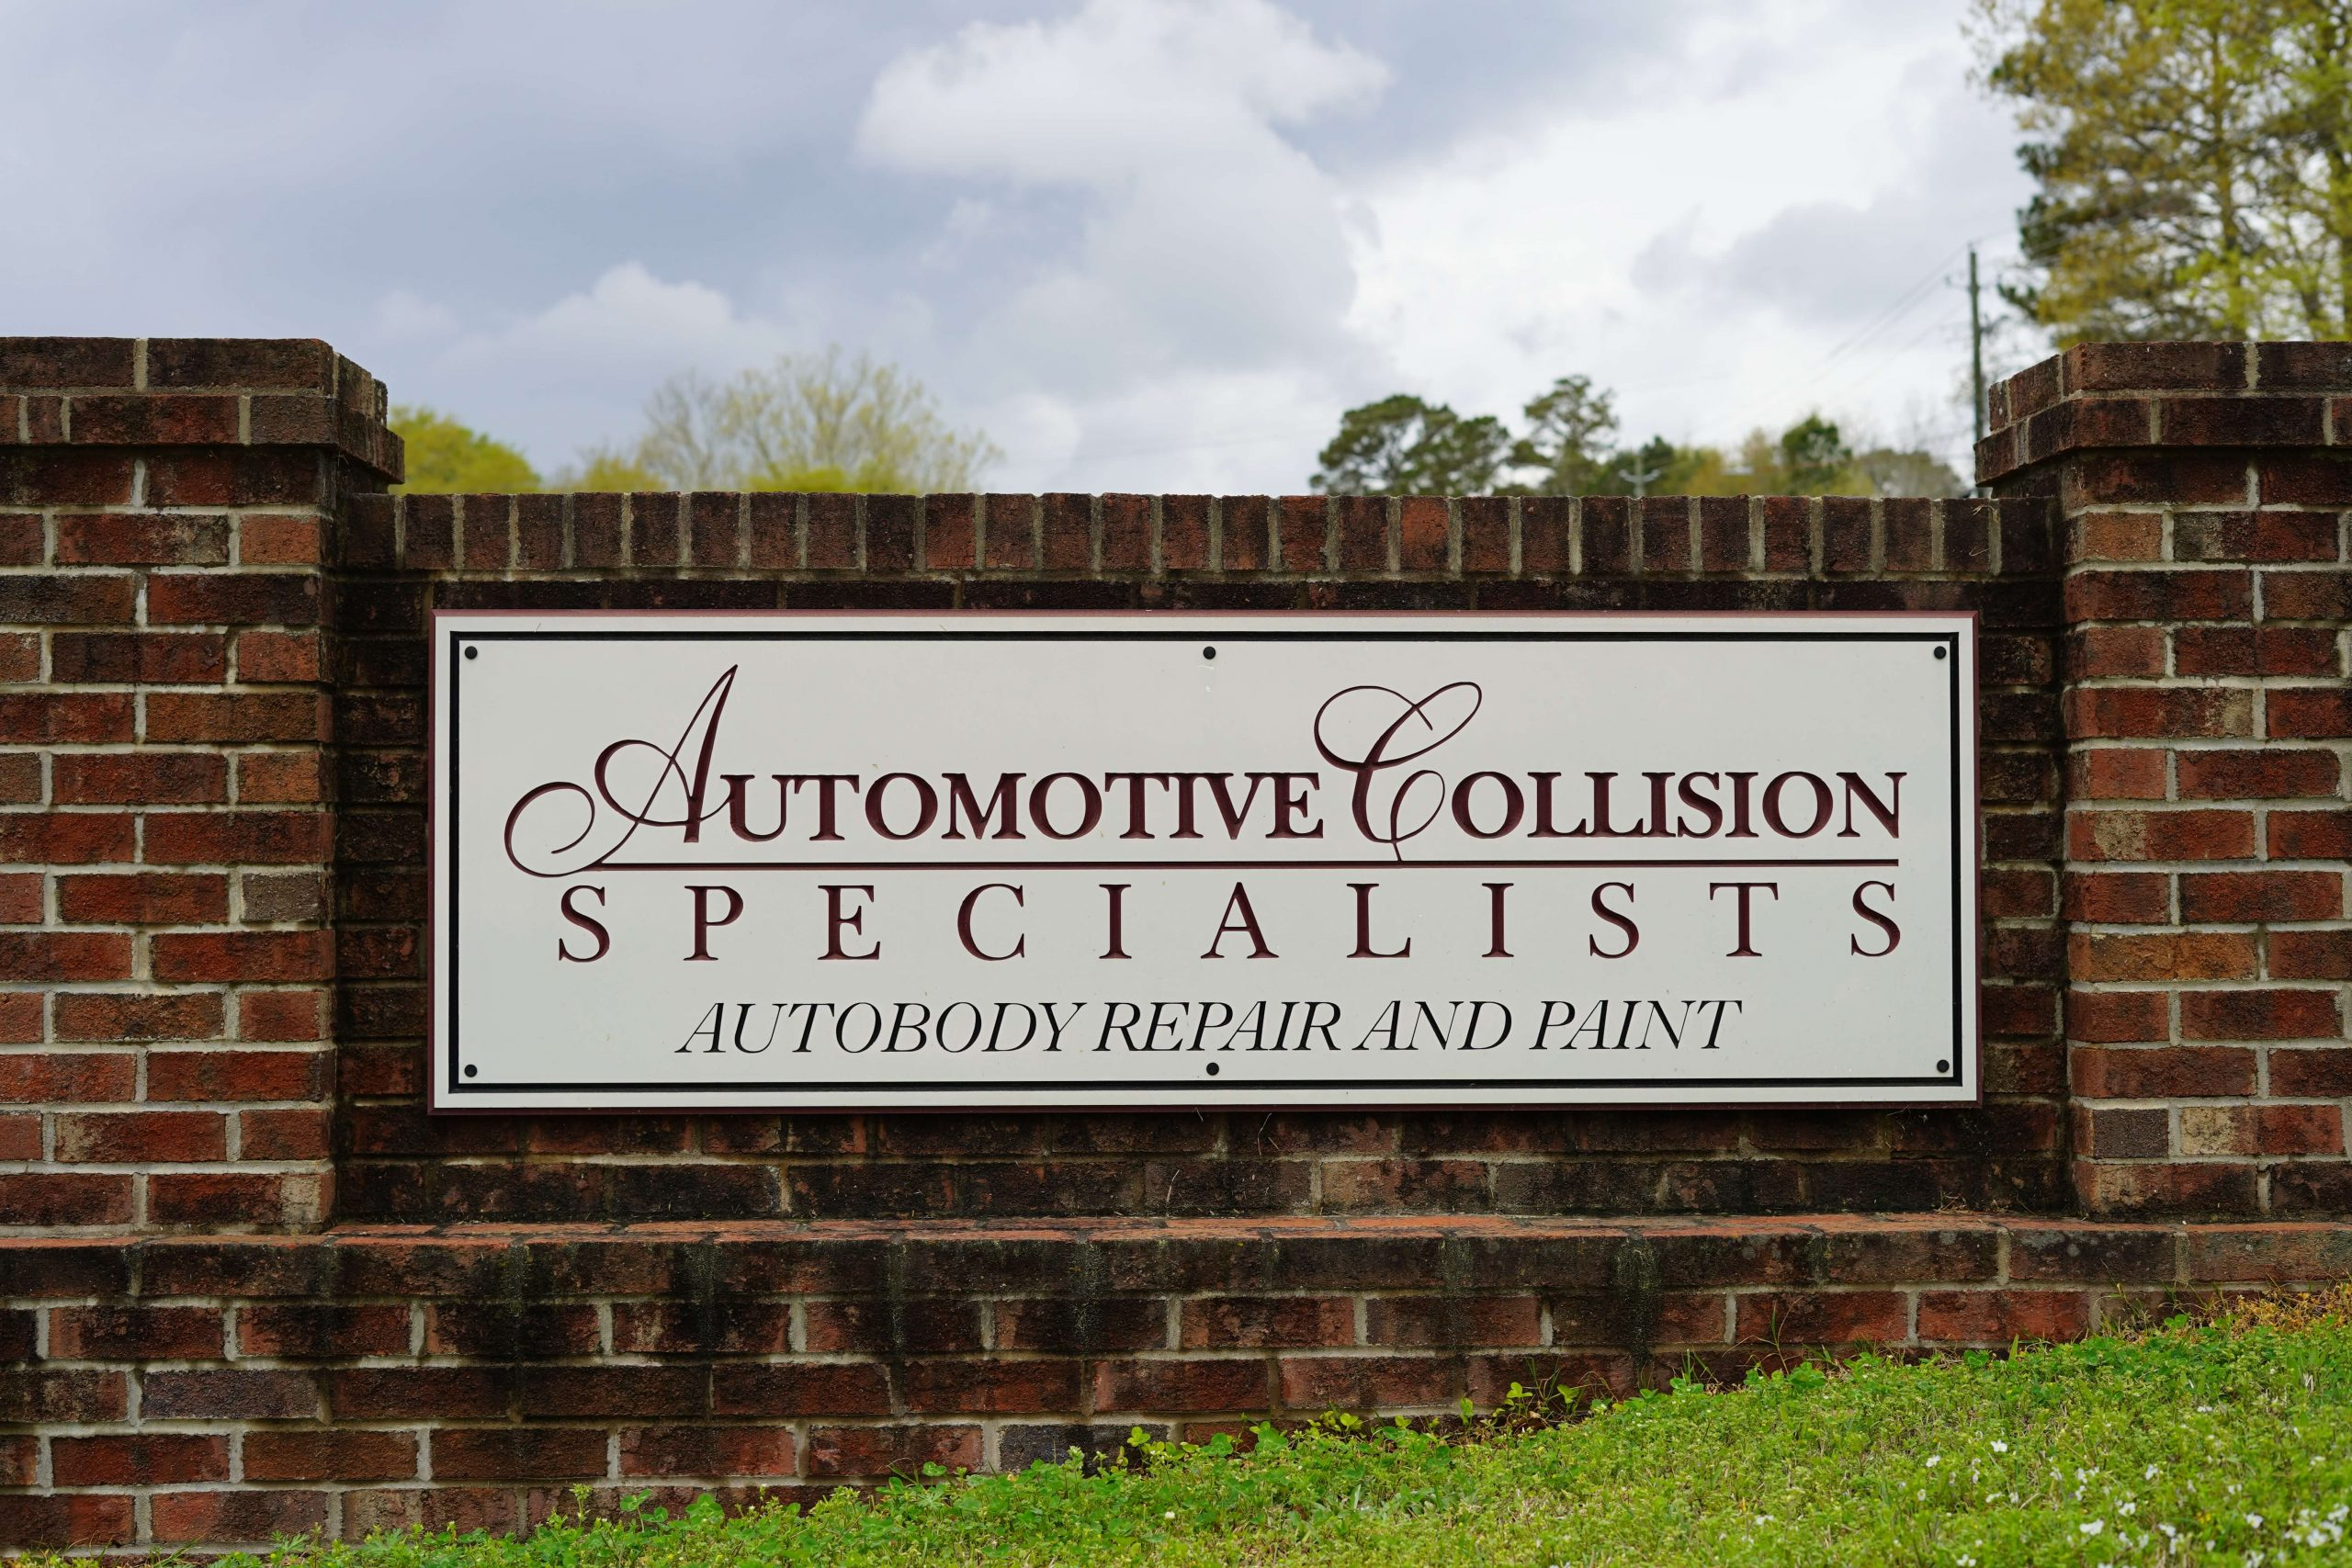 Photo of the sign in front of the Automotive Collision Specialists Auto Body Repair and Paint shop in Fuquay Varina North Carolina NC